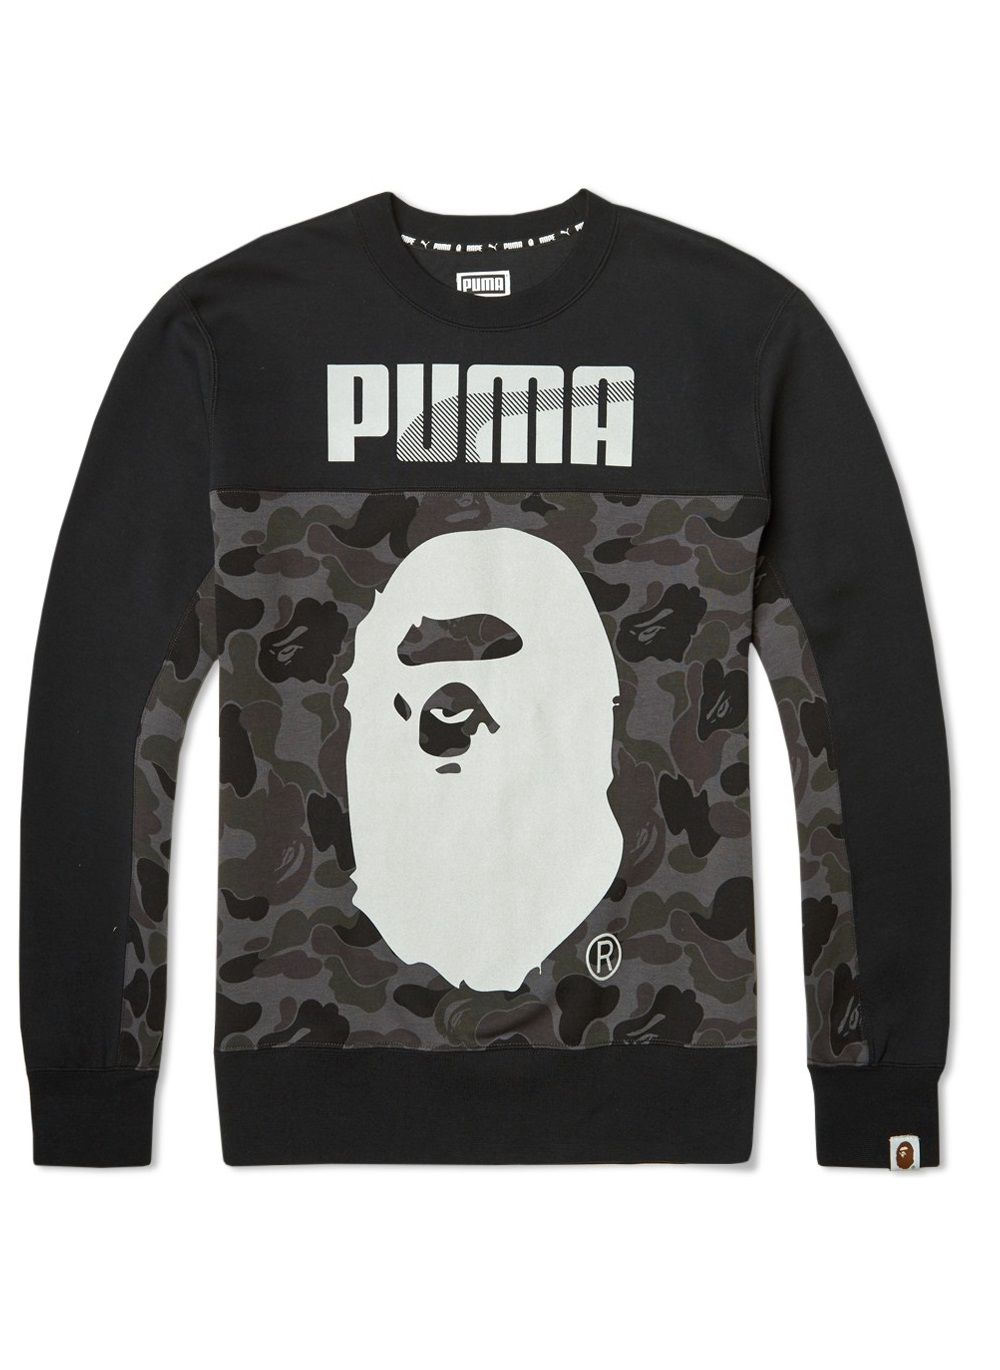 BAPE X Puma Crew Camouflage Sweat A Bathing Ape Sweater Shirt Men s  Sweatshirt in Camo Black 74a0cb7e54